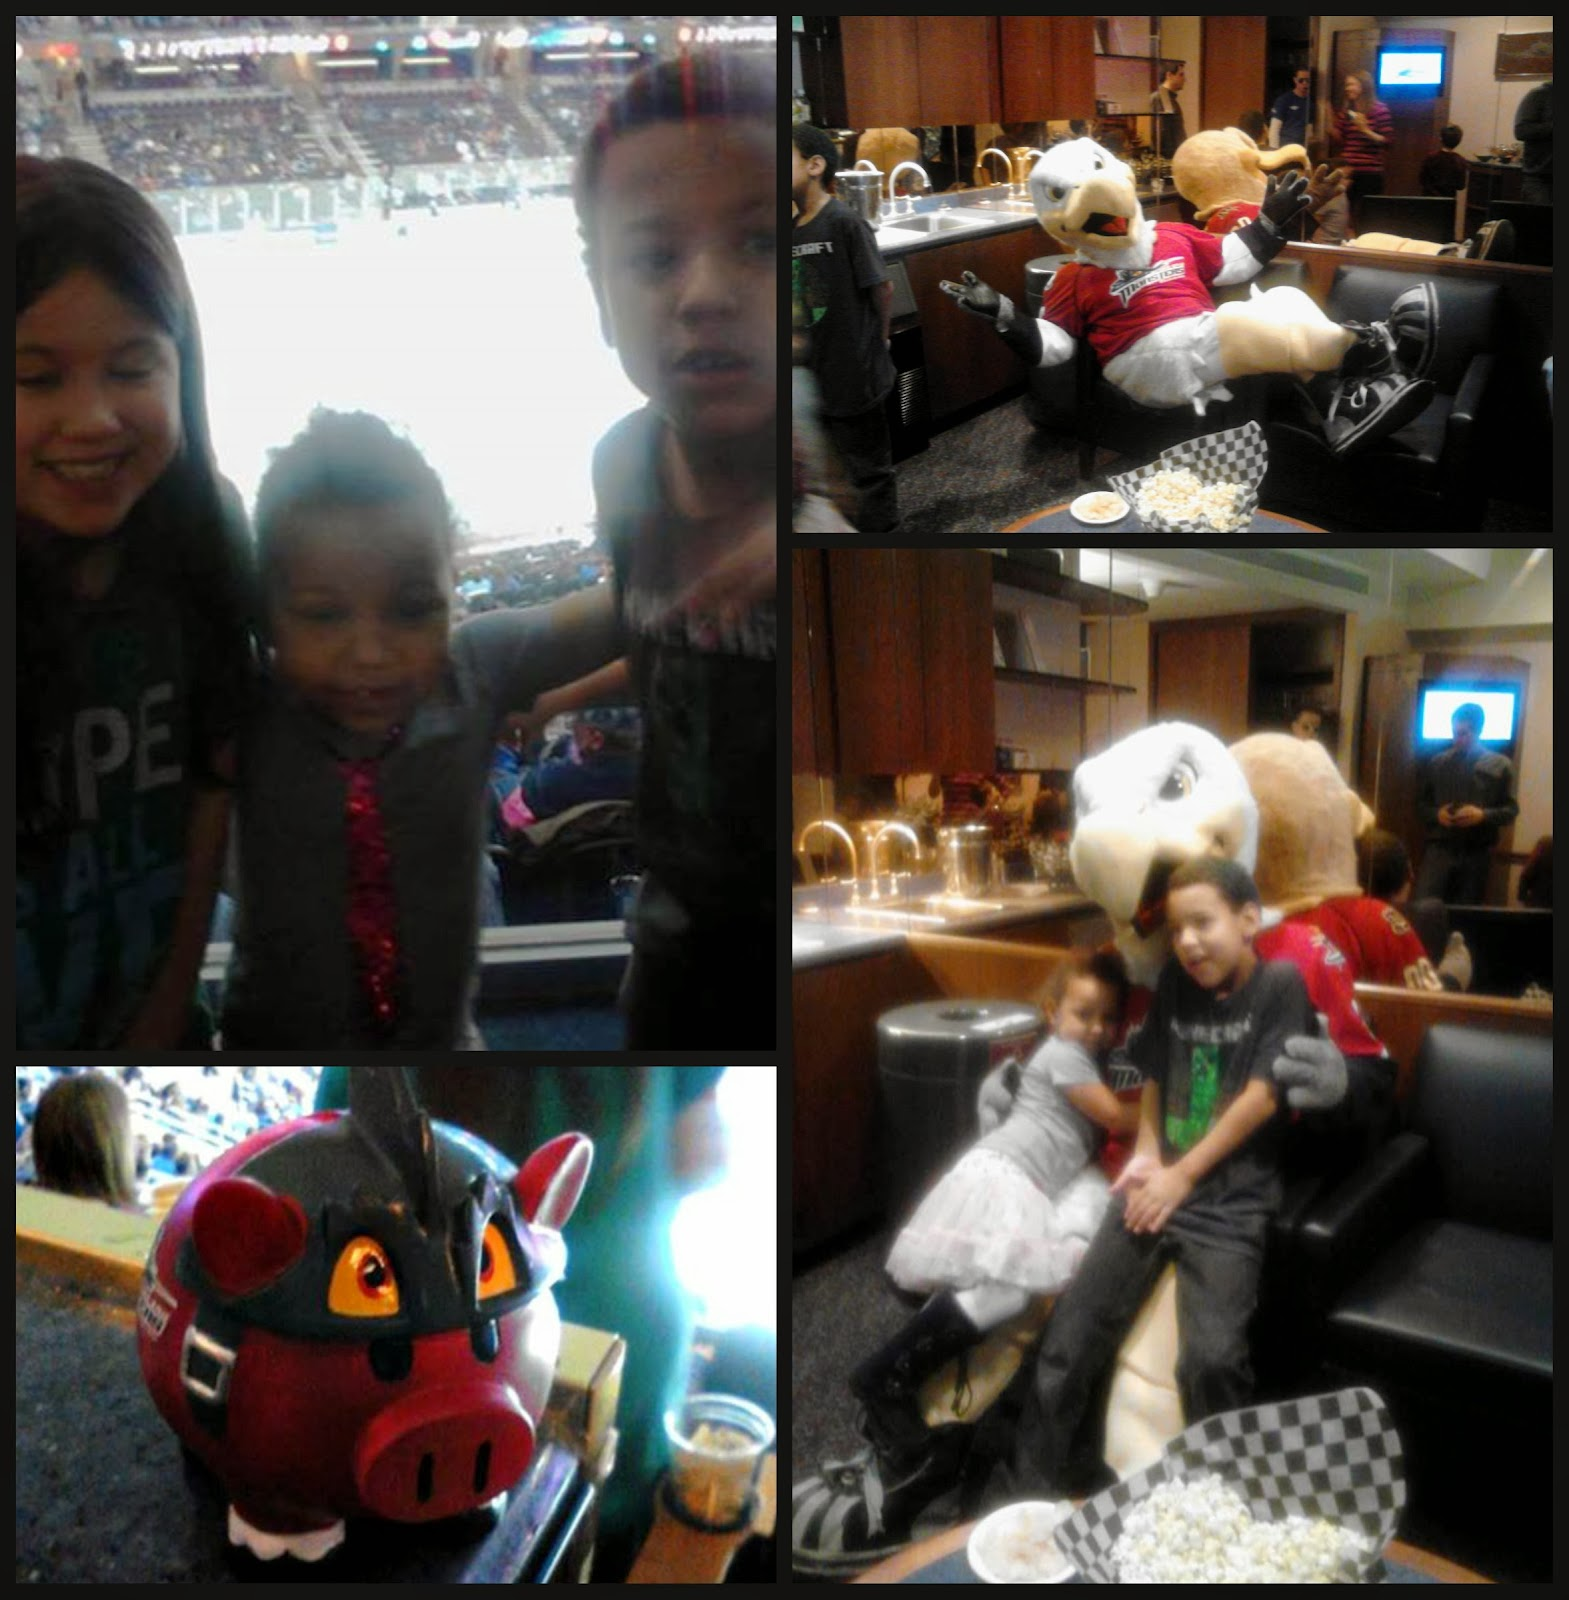 Kids having fun | 5 Facts About @MonstersHockey That Will Impress Your Mom #sponsored